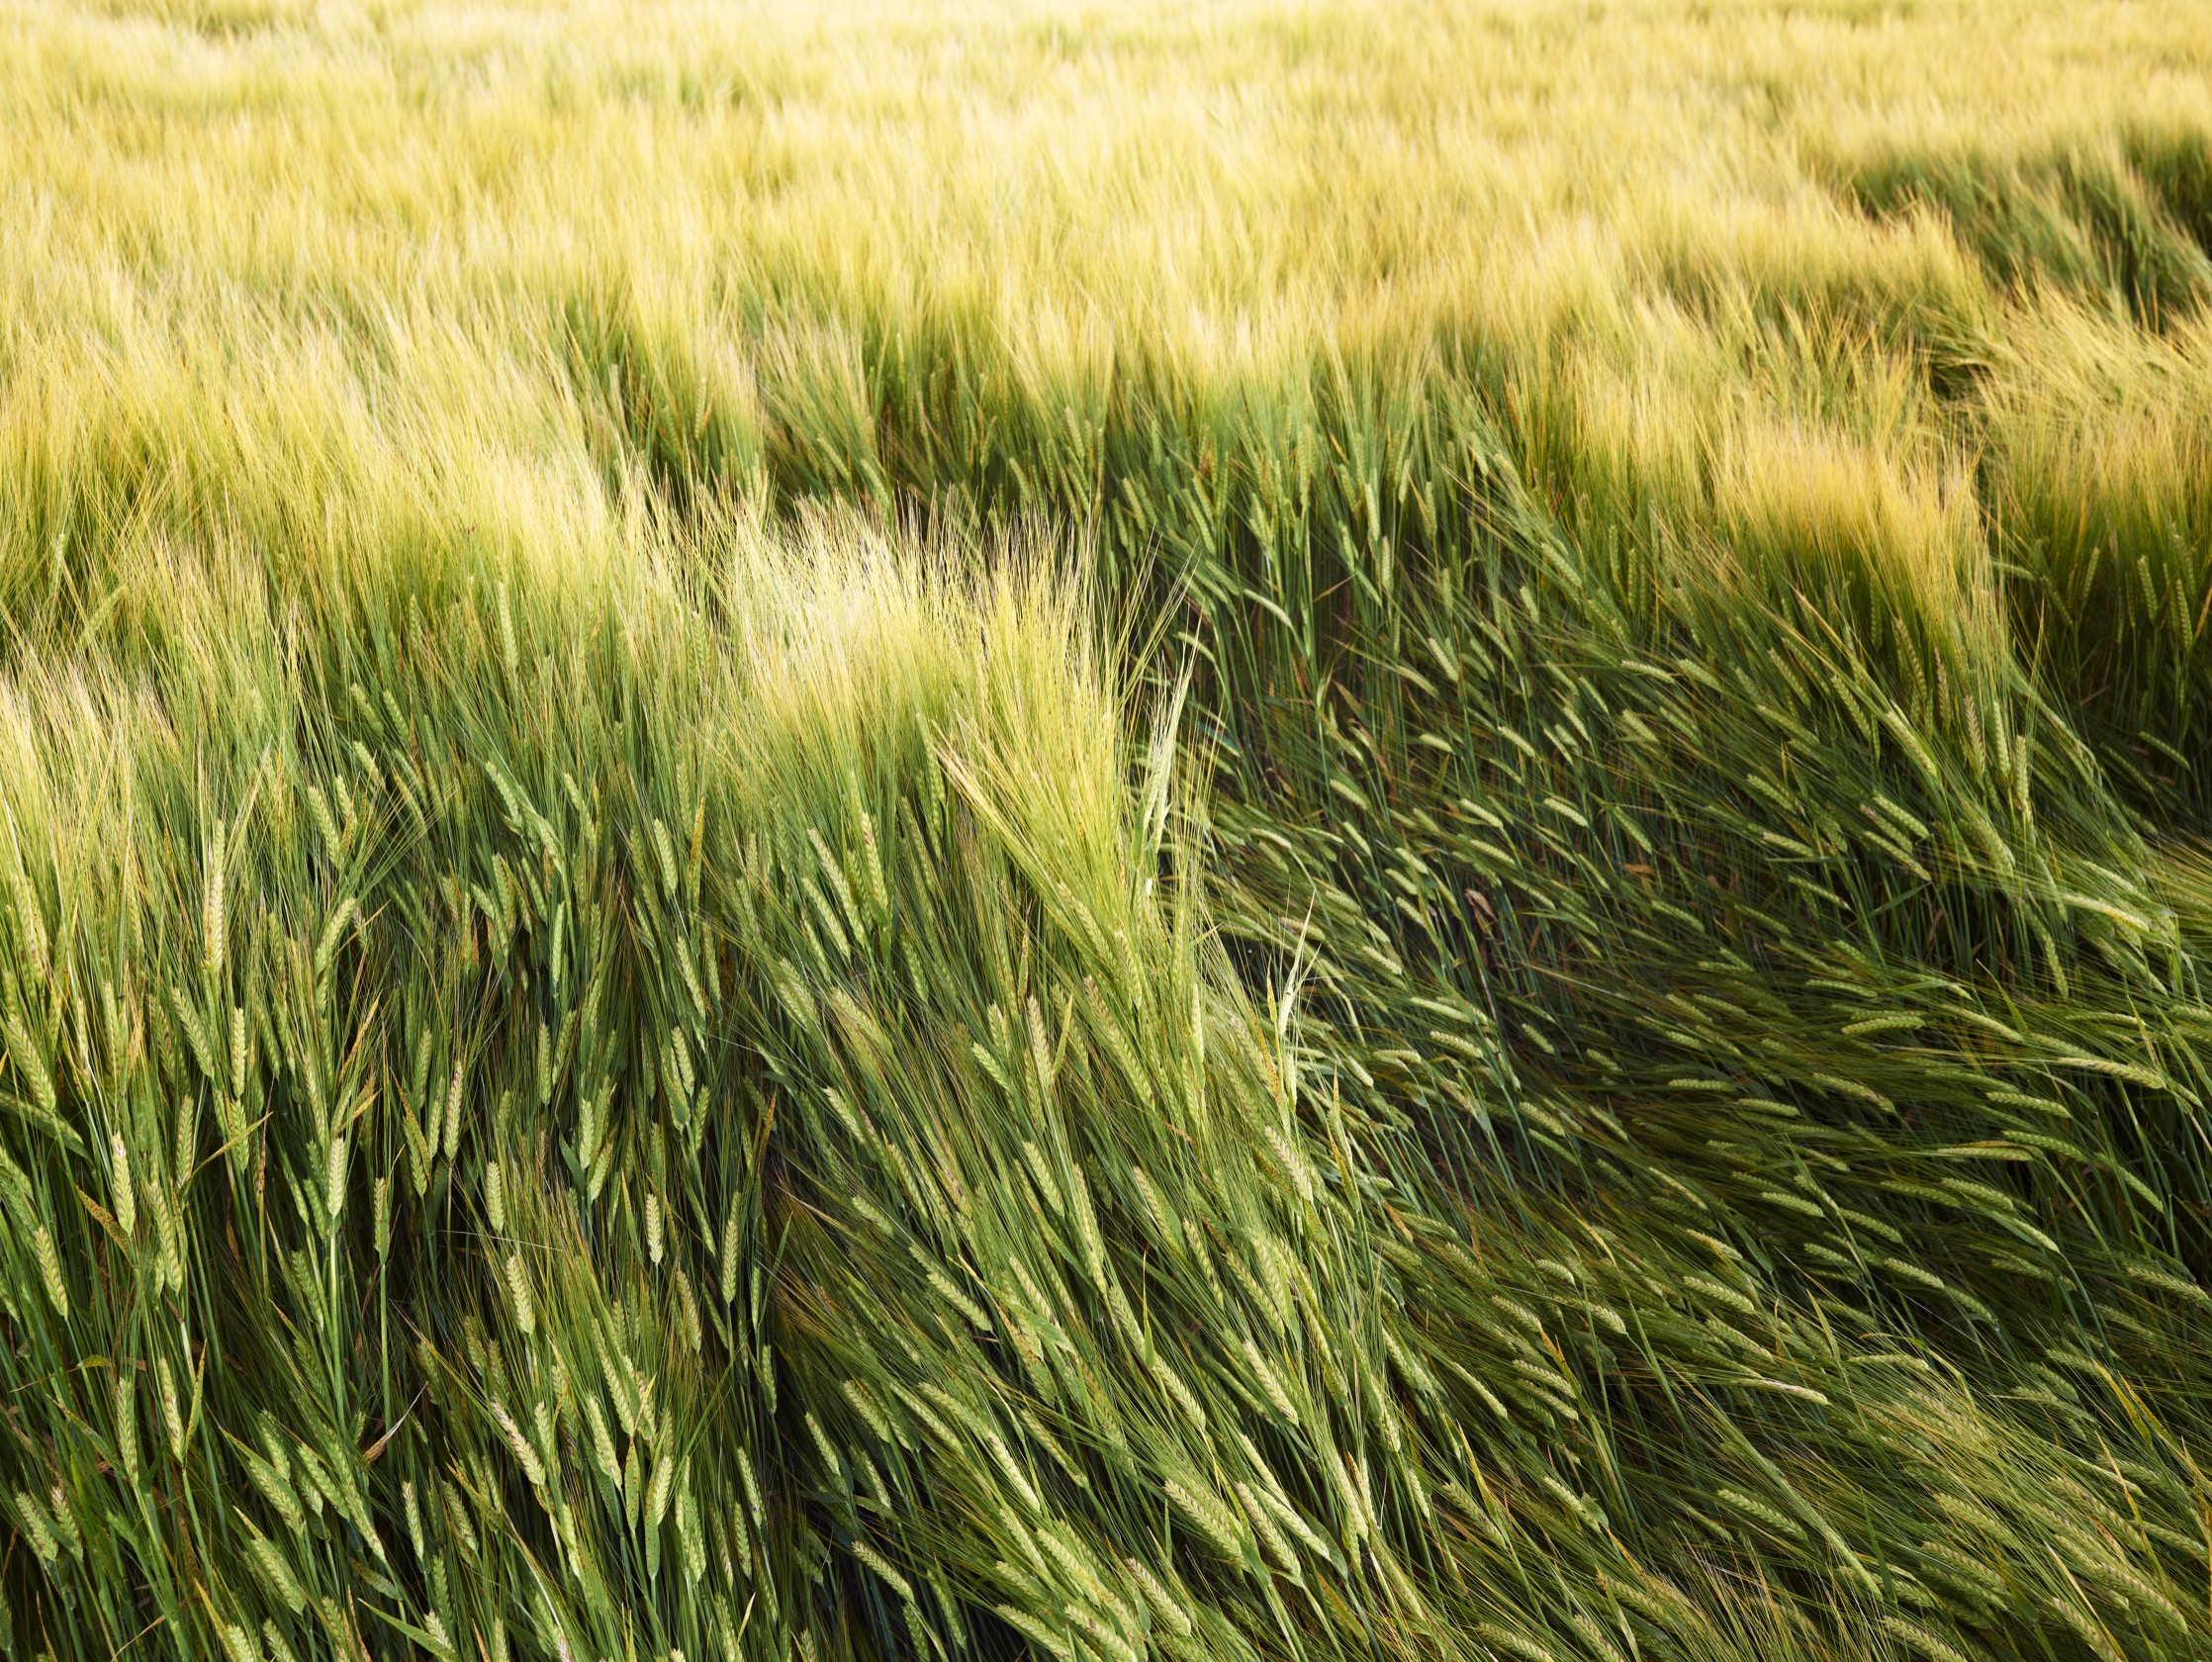 A close-up of grass blowing in the wind.